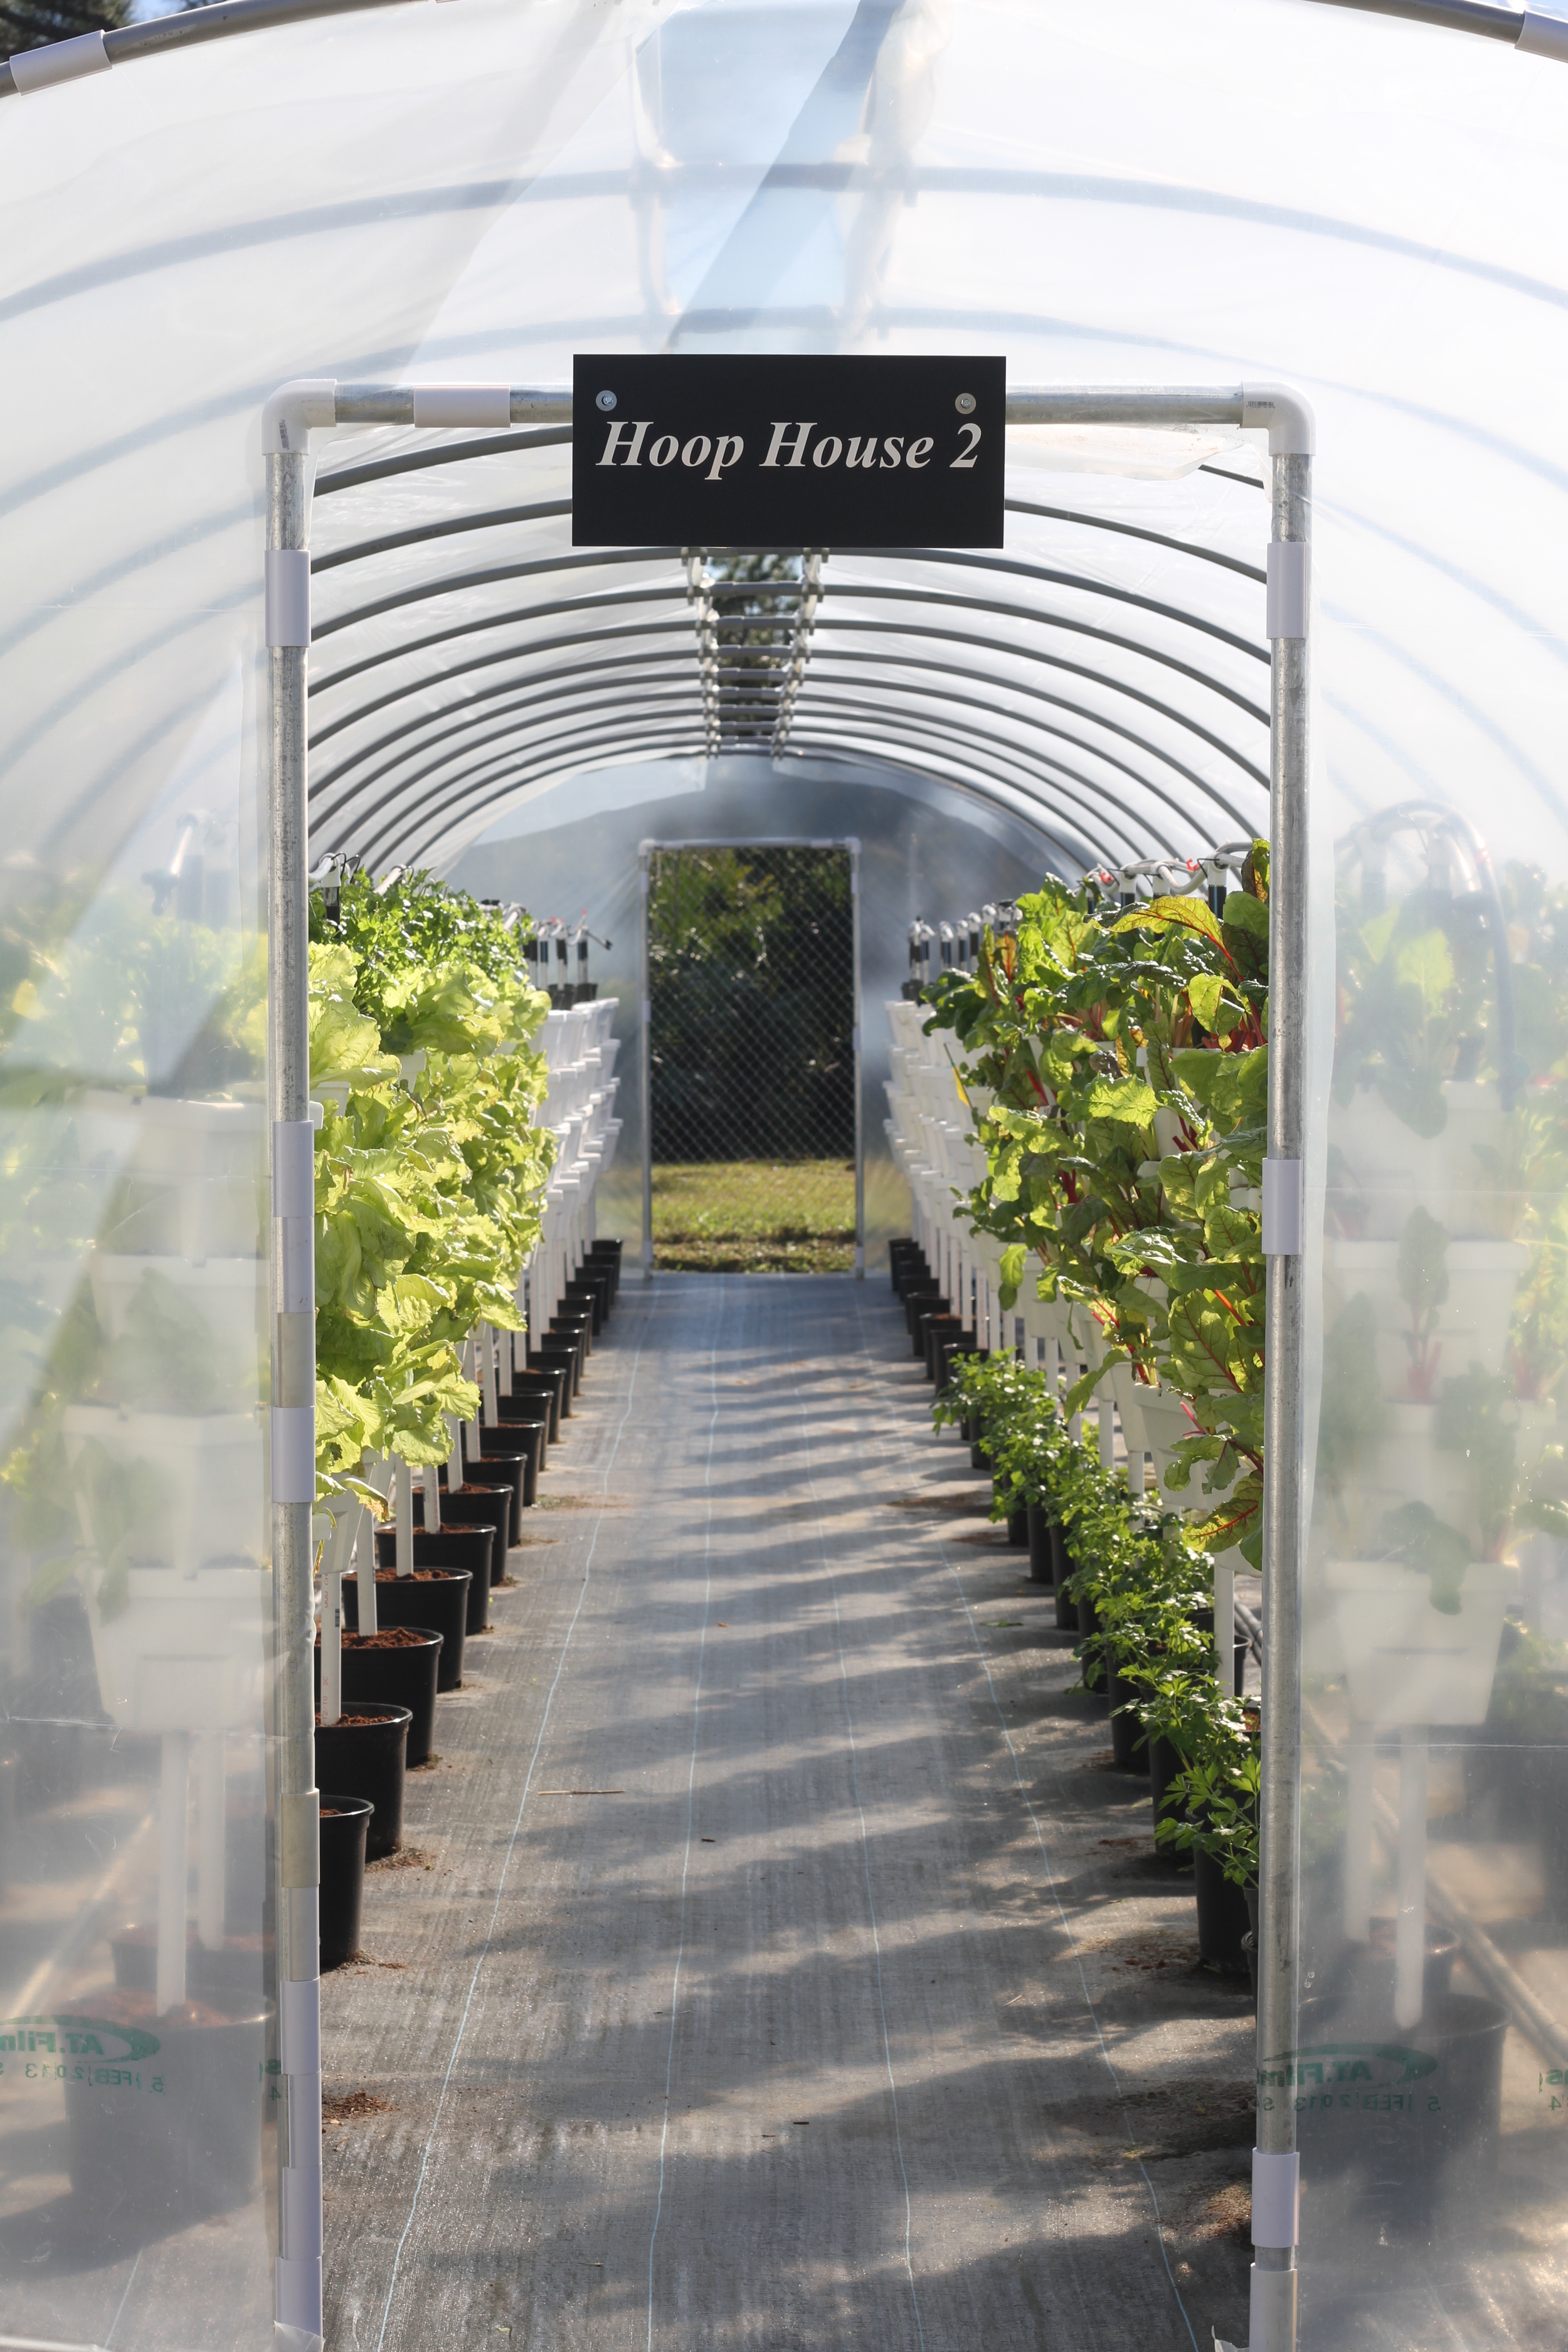 Hydro House with Chard and more.